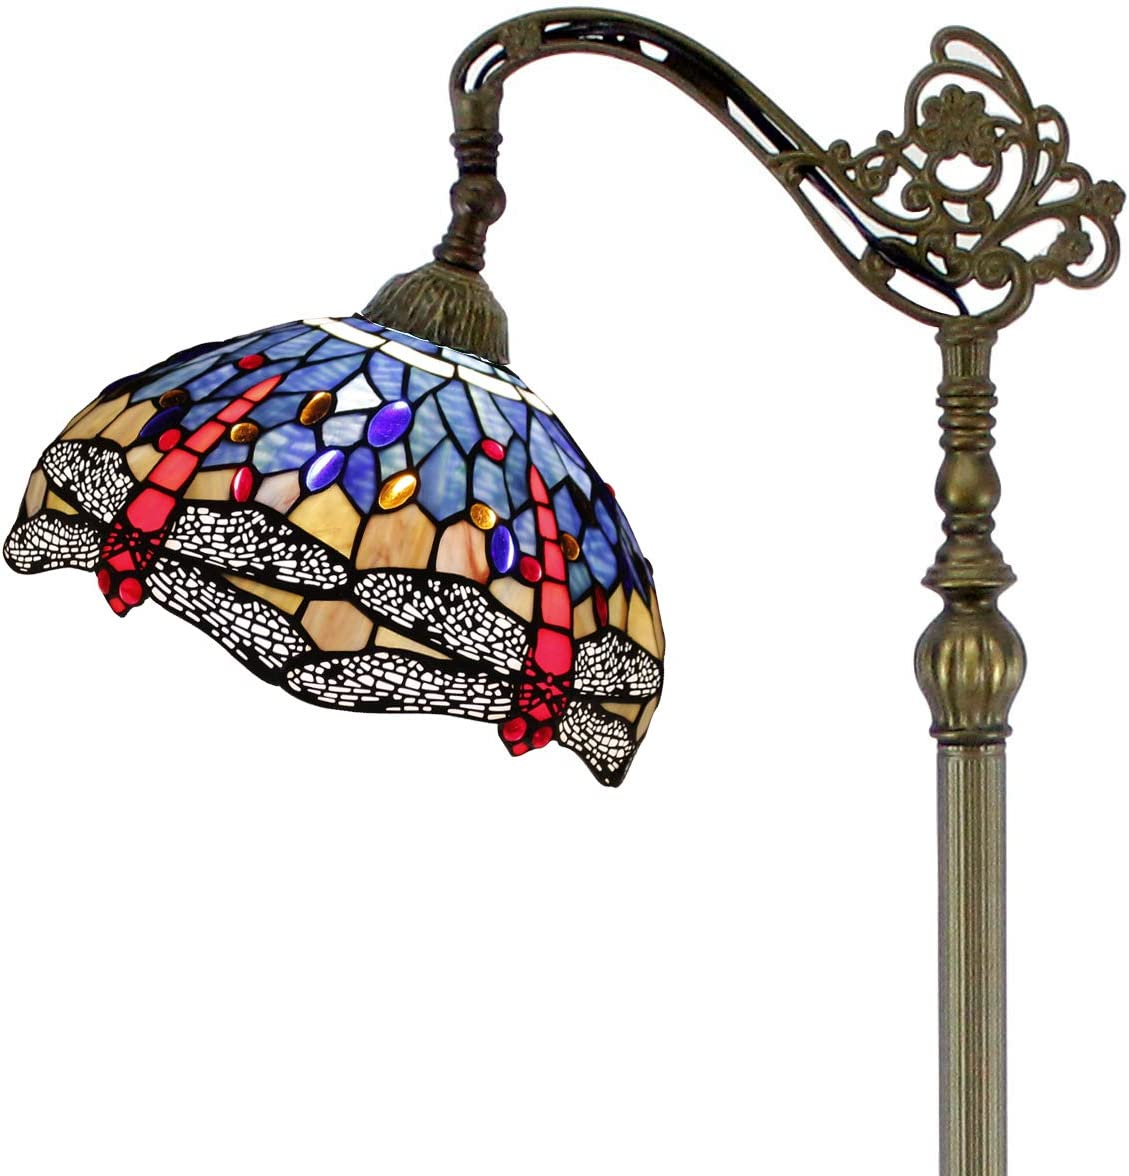 Tiffany Style Reading Floor Lamp Blue Stained Glass with Crystal Bead Dragonfly Lampshade 64 Inch Tall Antique Arched Base for Bedroom Living Room Lighting Table Gifts S688 WERFACTORY